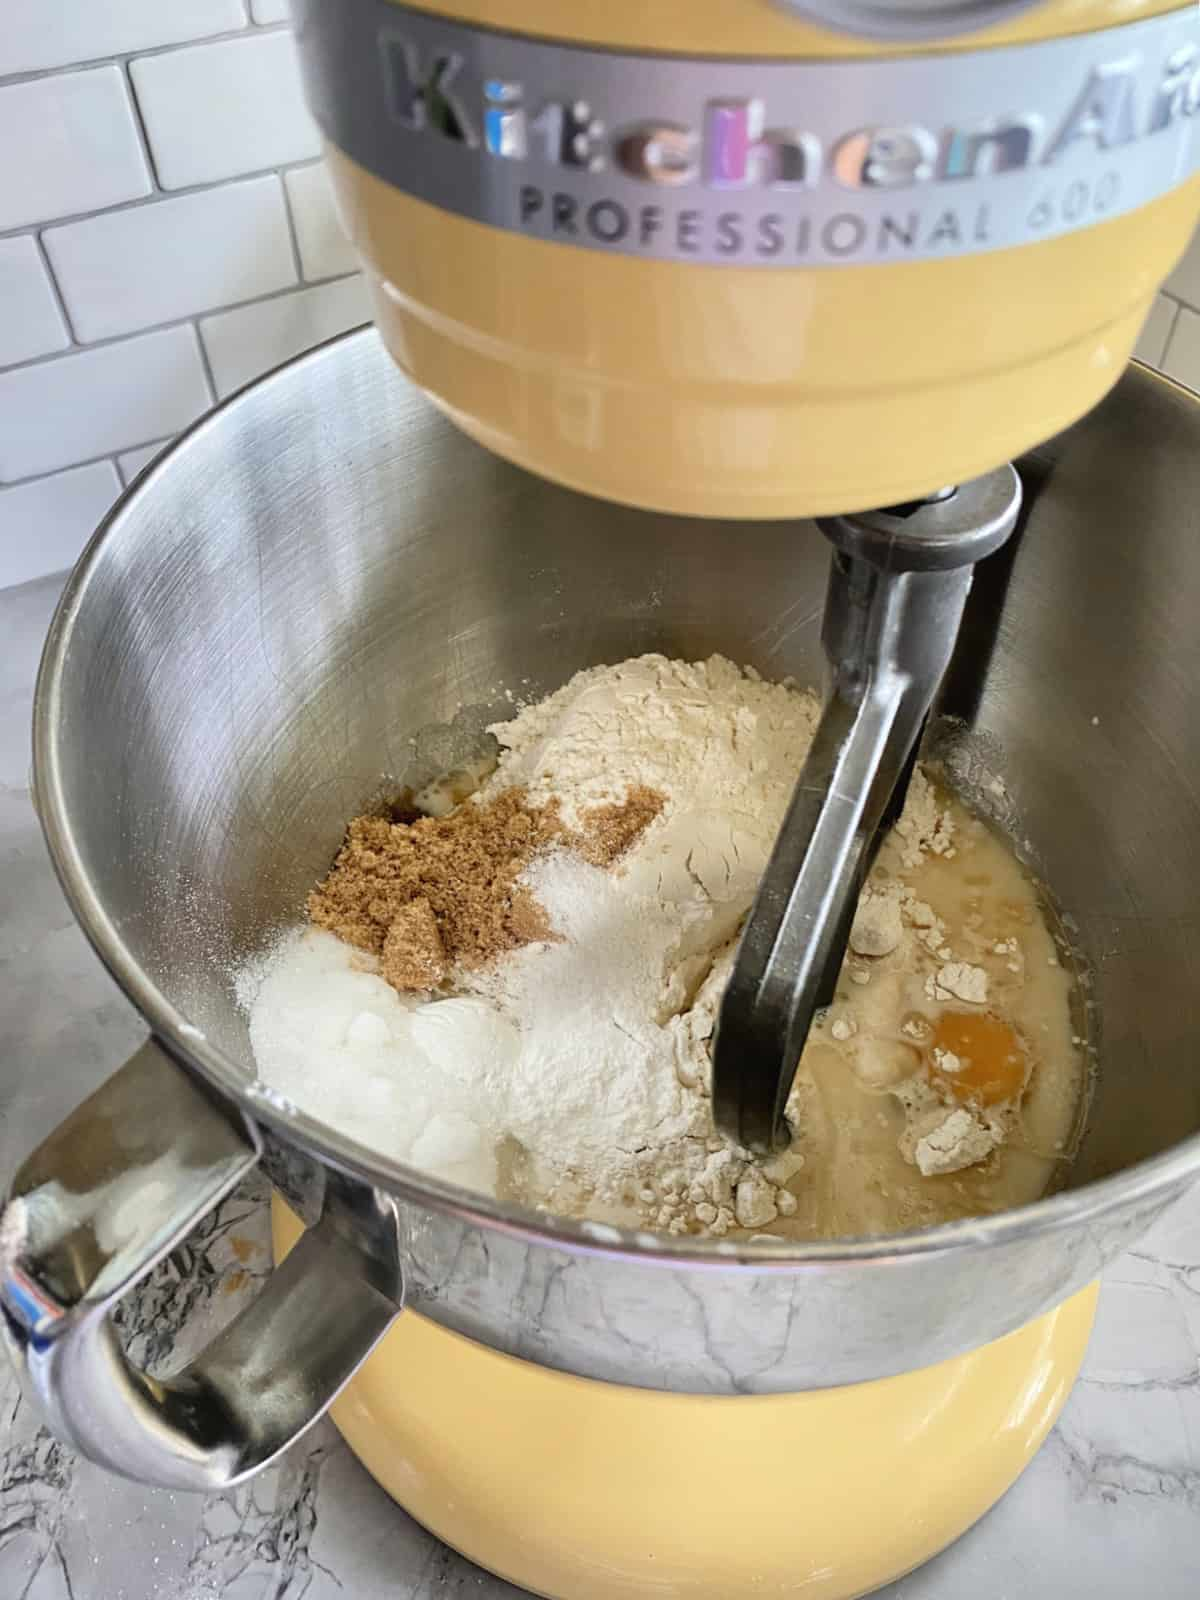 Dry and wet ingredients in a stainless steel mixing bowl attached to a KitchenAid Yellow Mixer.